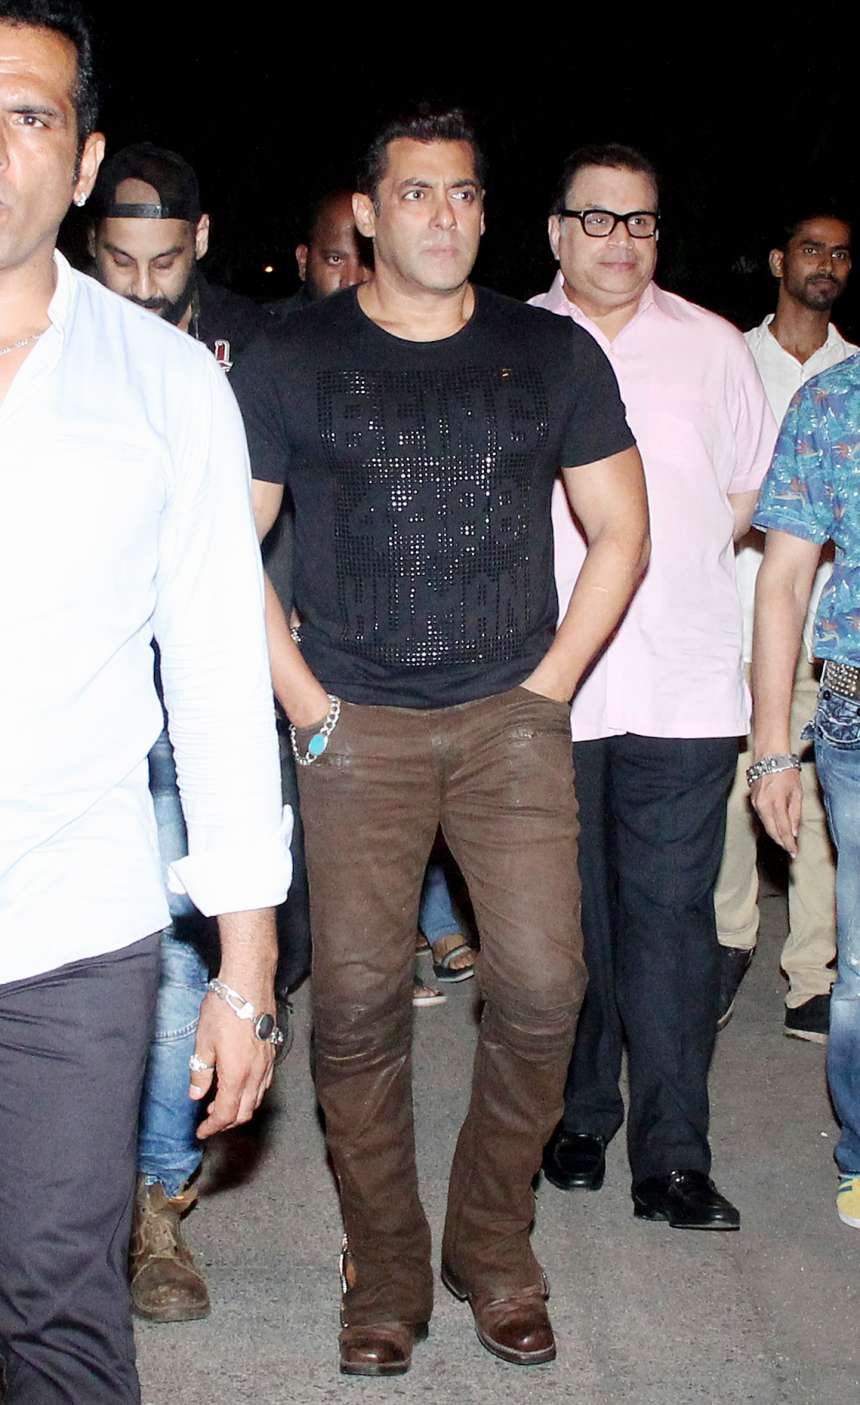 As usual Salman was looking dashing in his black T-shirt, which he paired with brown trouser and leather shoes. Well fans are also eager to see Salman's magic in Tubelight in theatres.